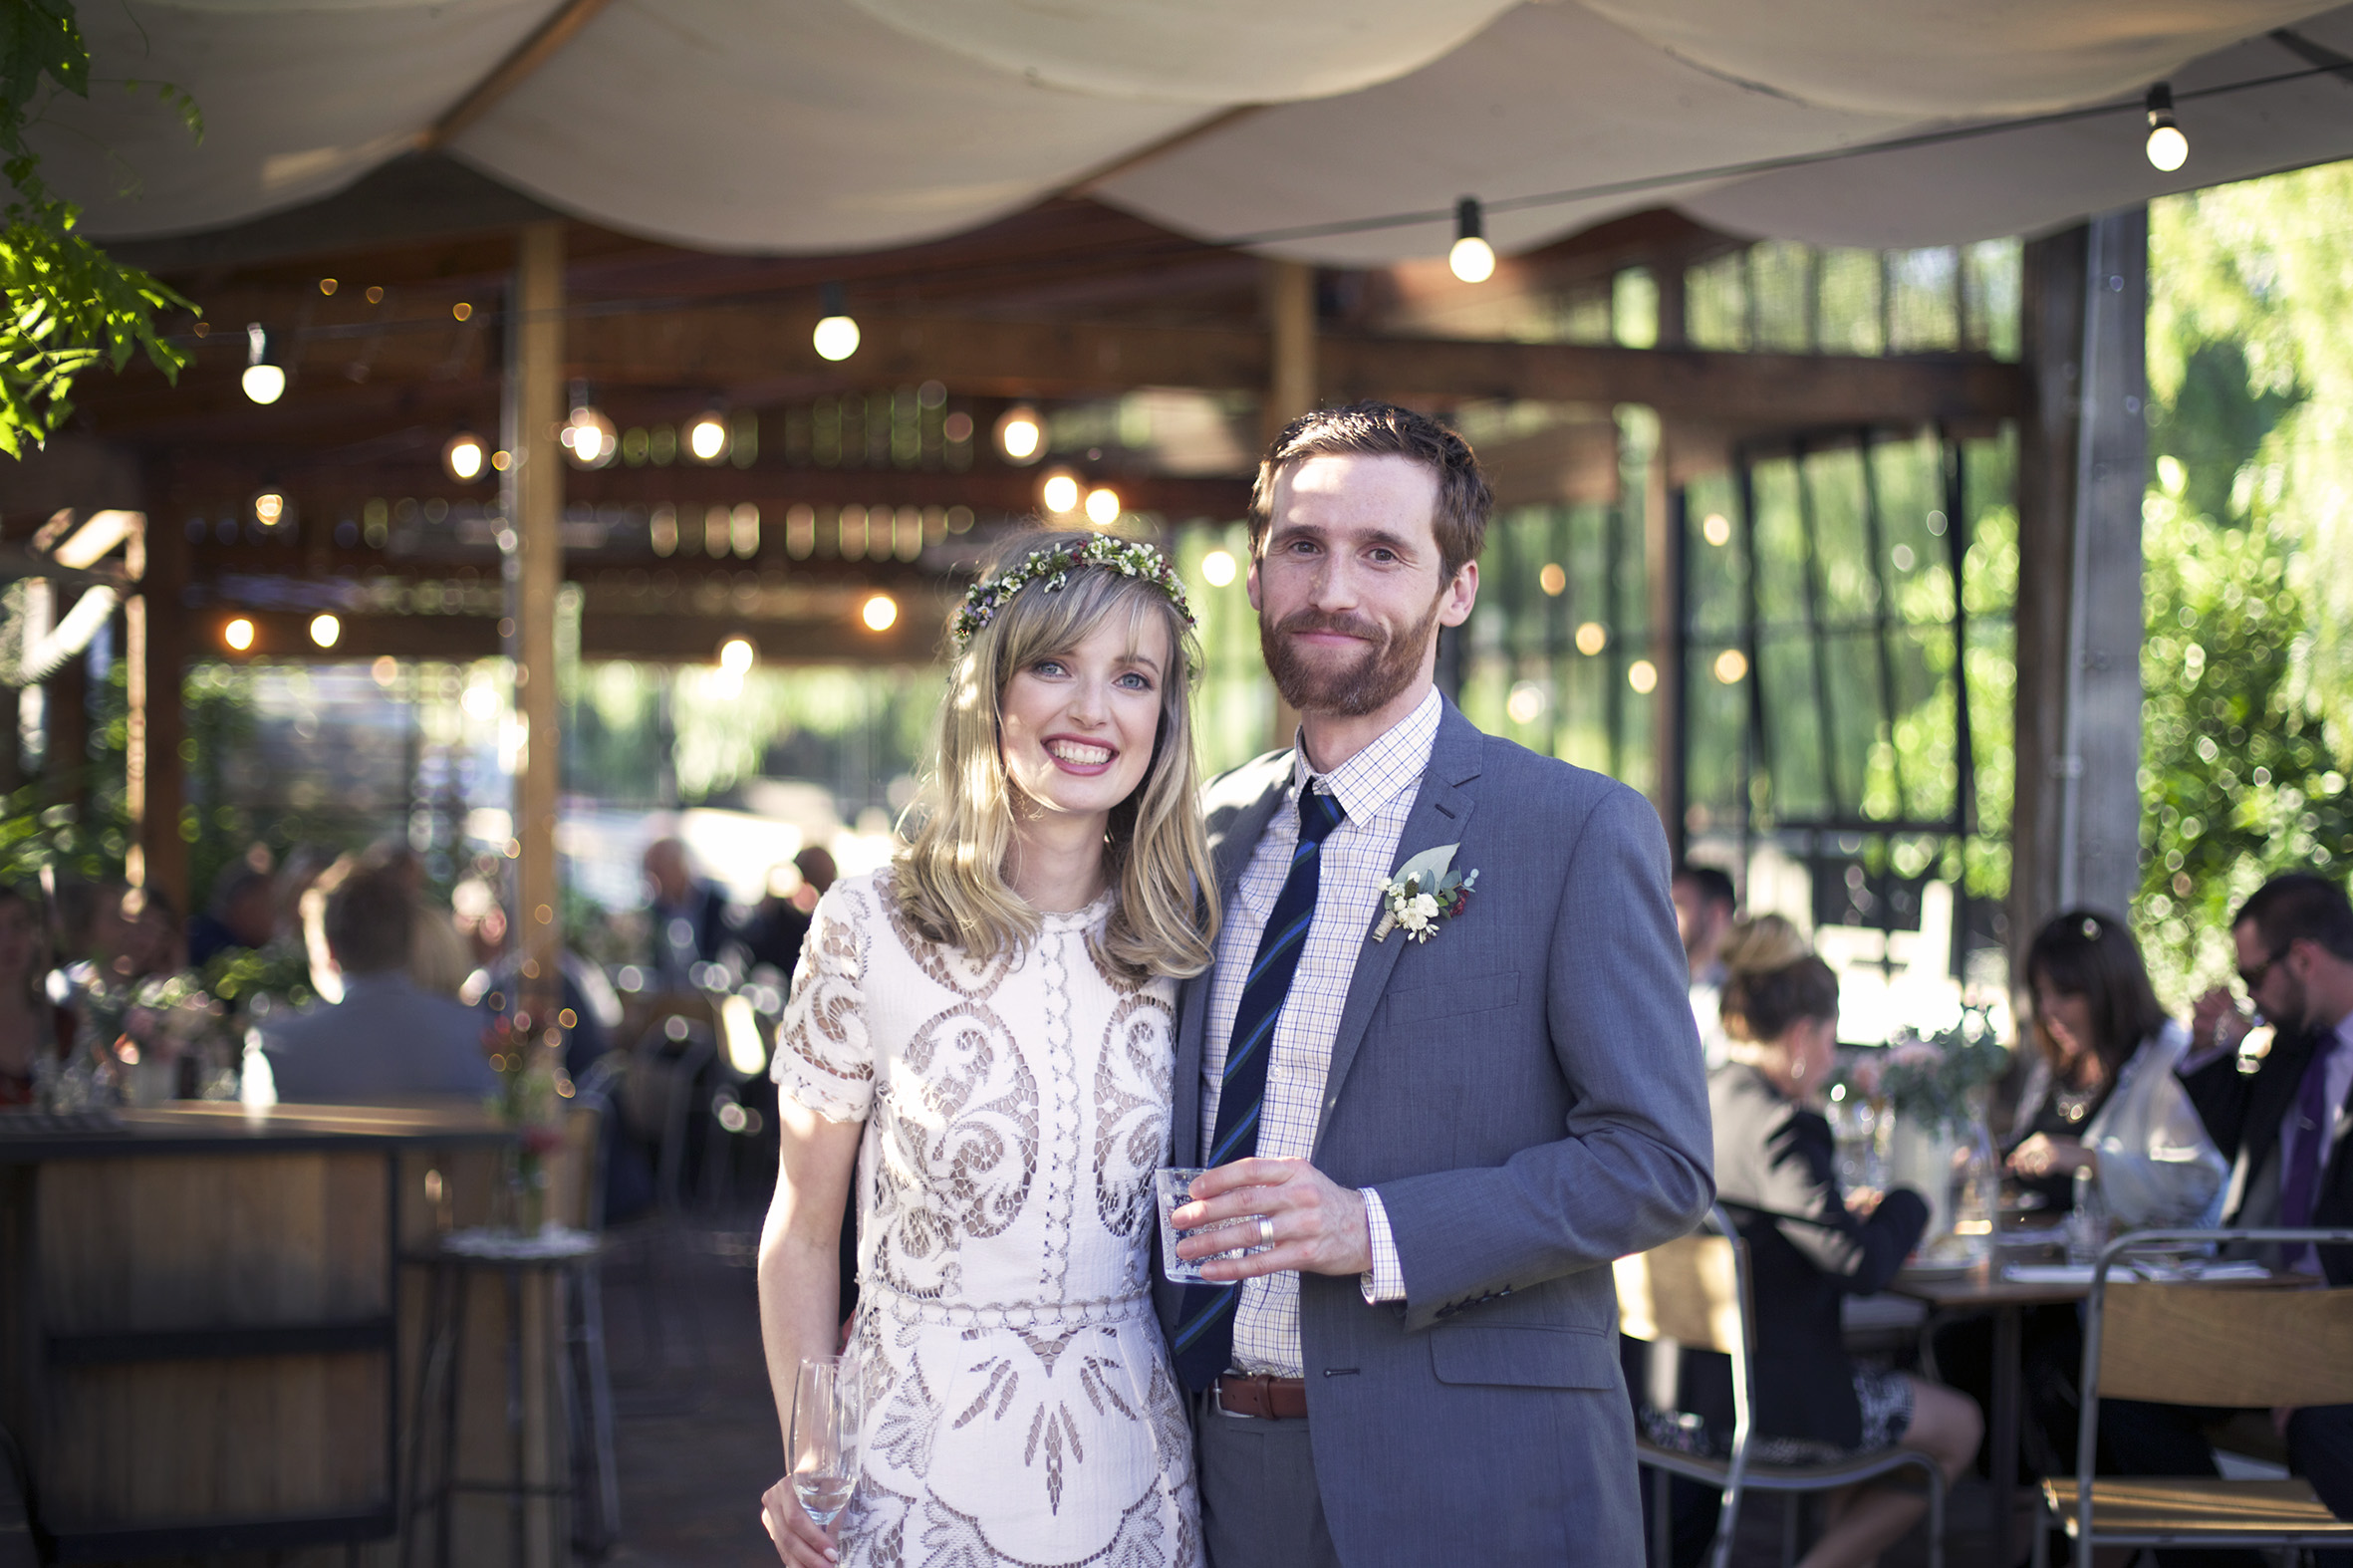 outdoor venue wedding melbourne 1.jpg